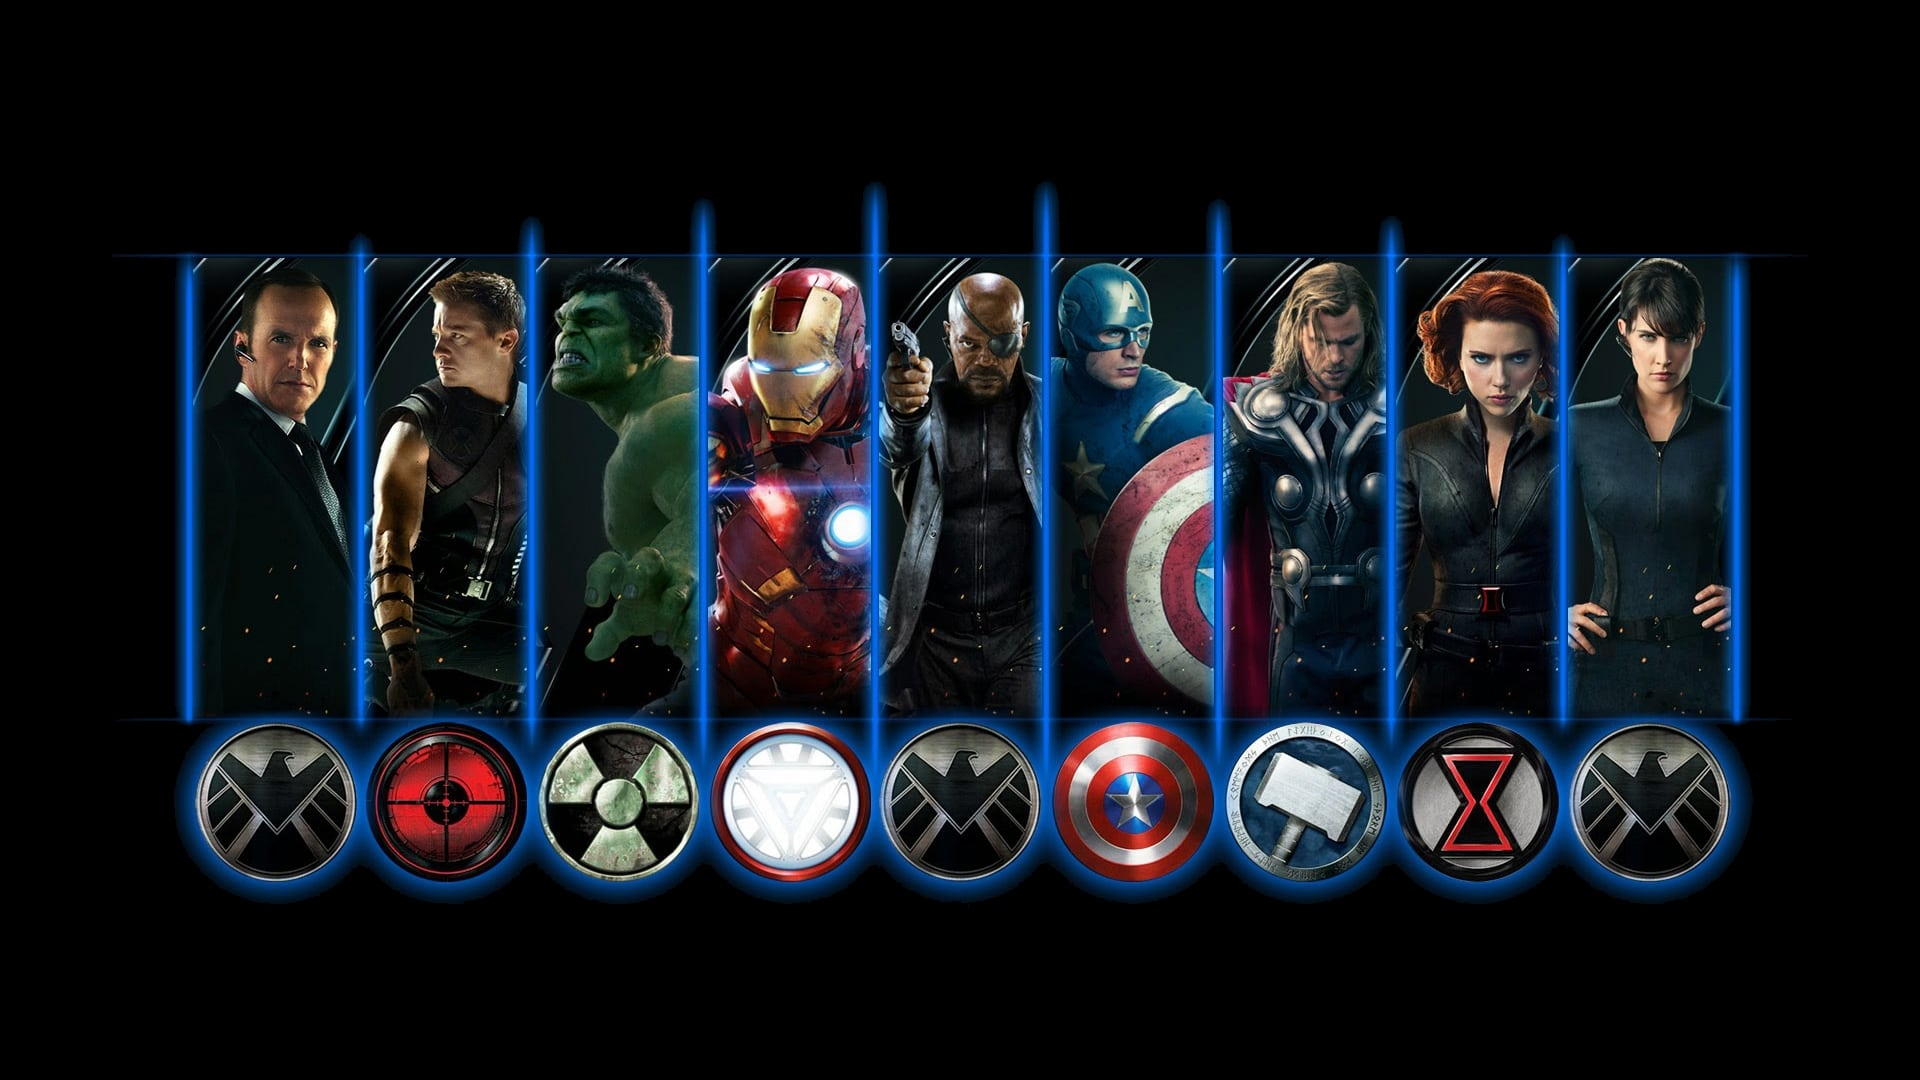 The Avengers: The Avengers Collection (2012-2019)